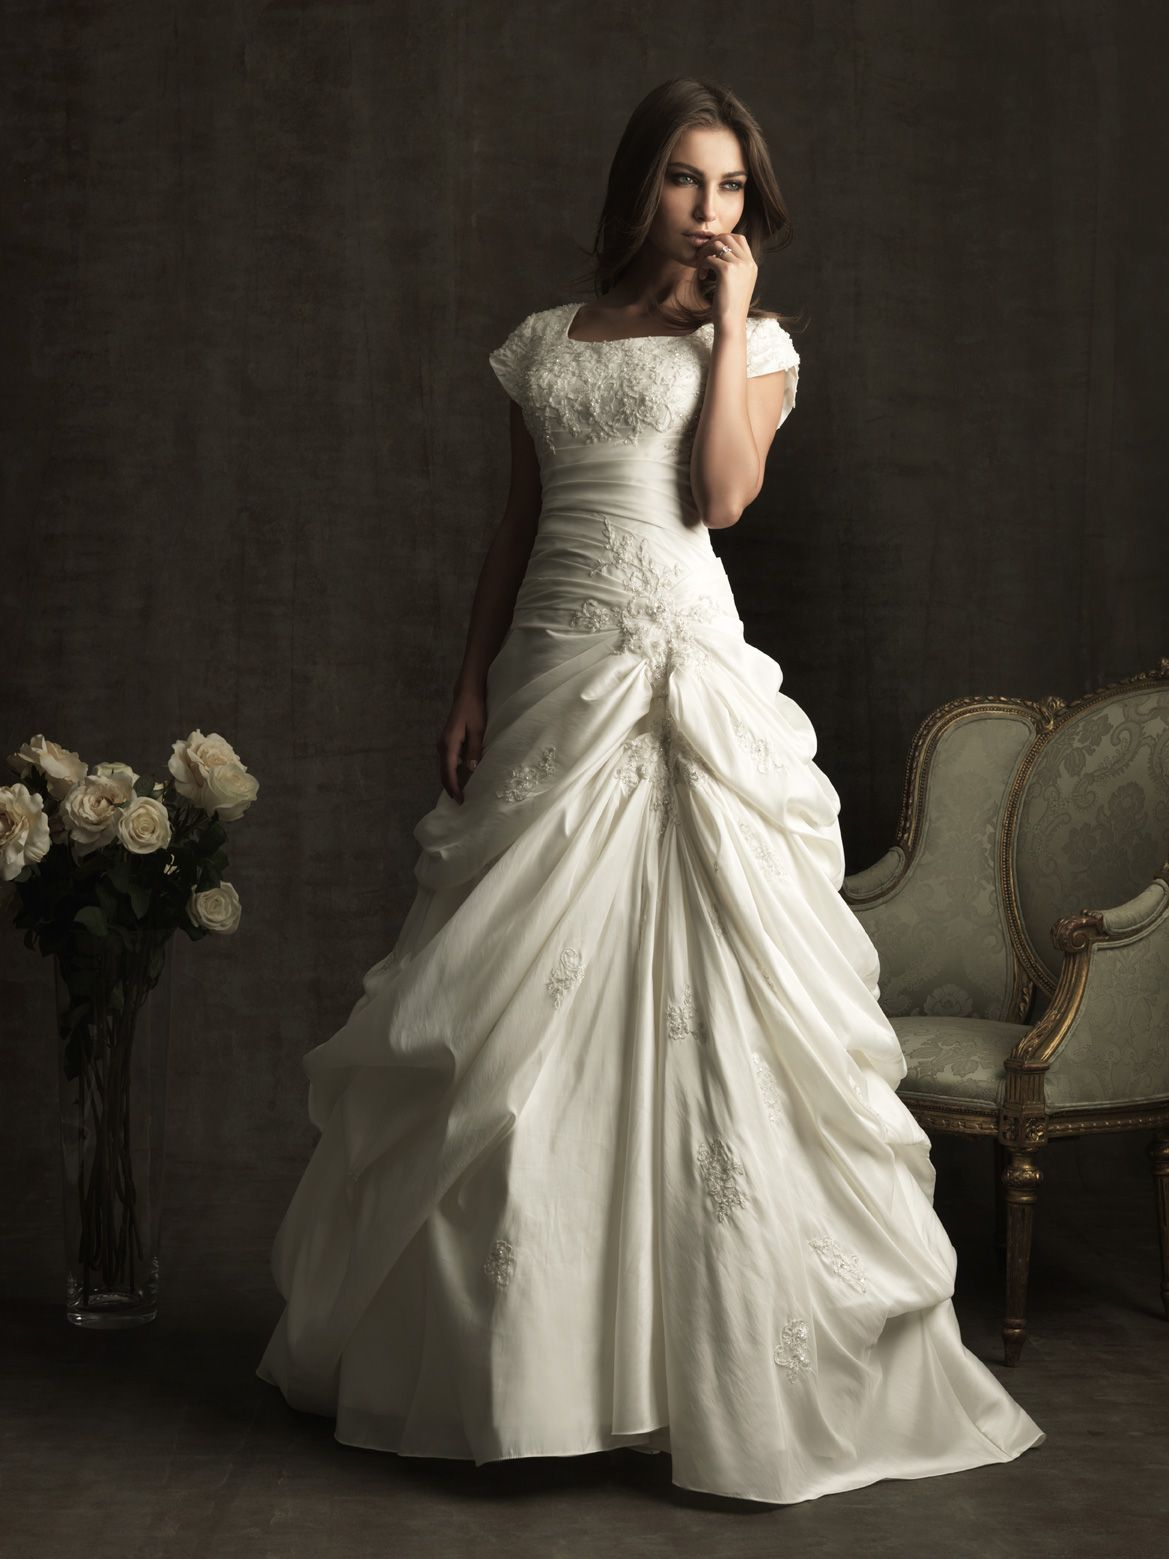 Fantasy Bridal   Contemporary and Modest Bridal Gowns for Utah ...